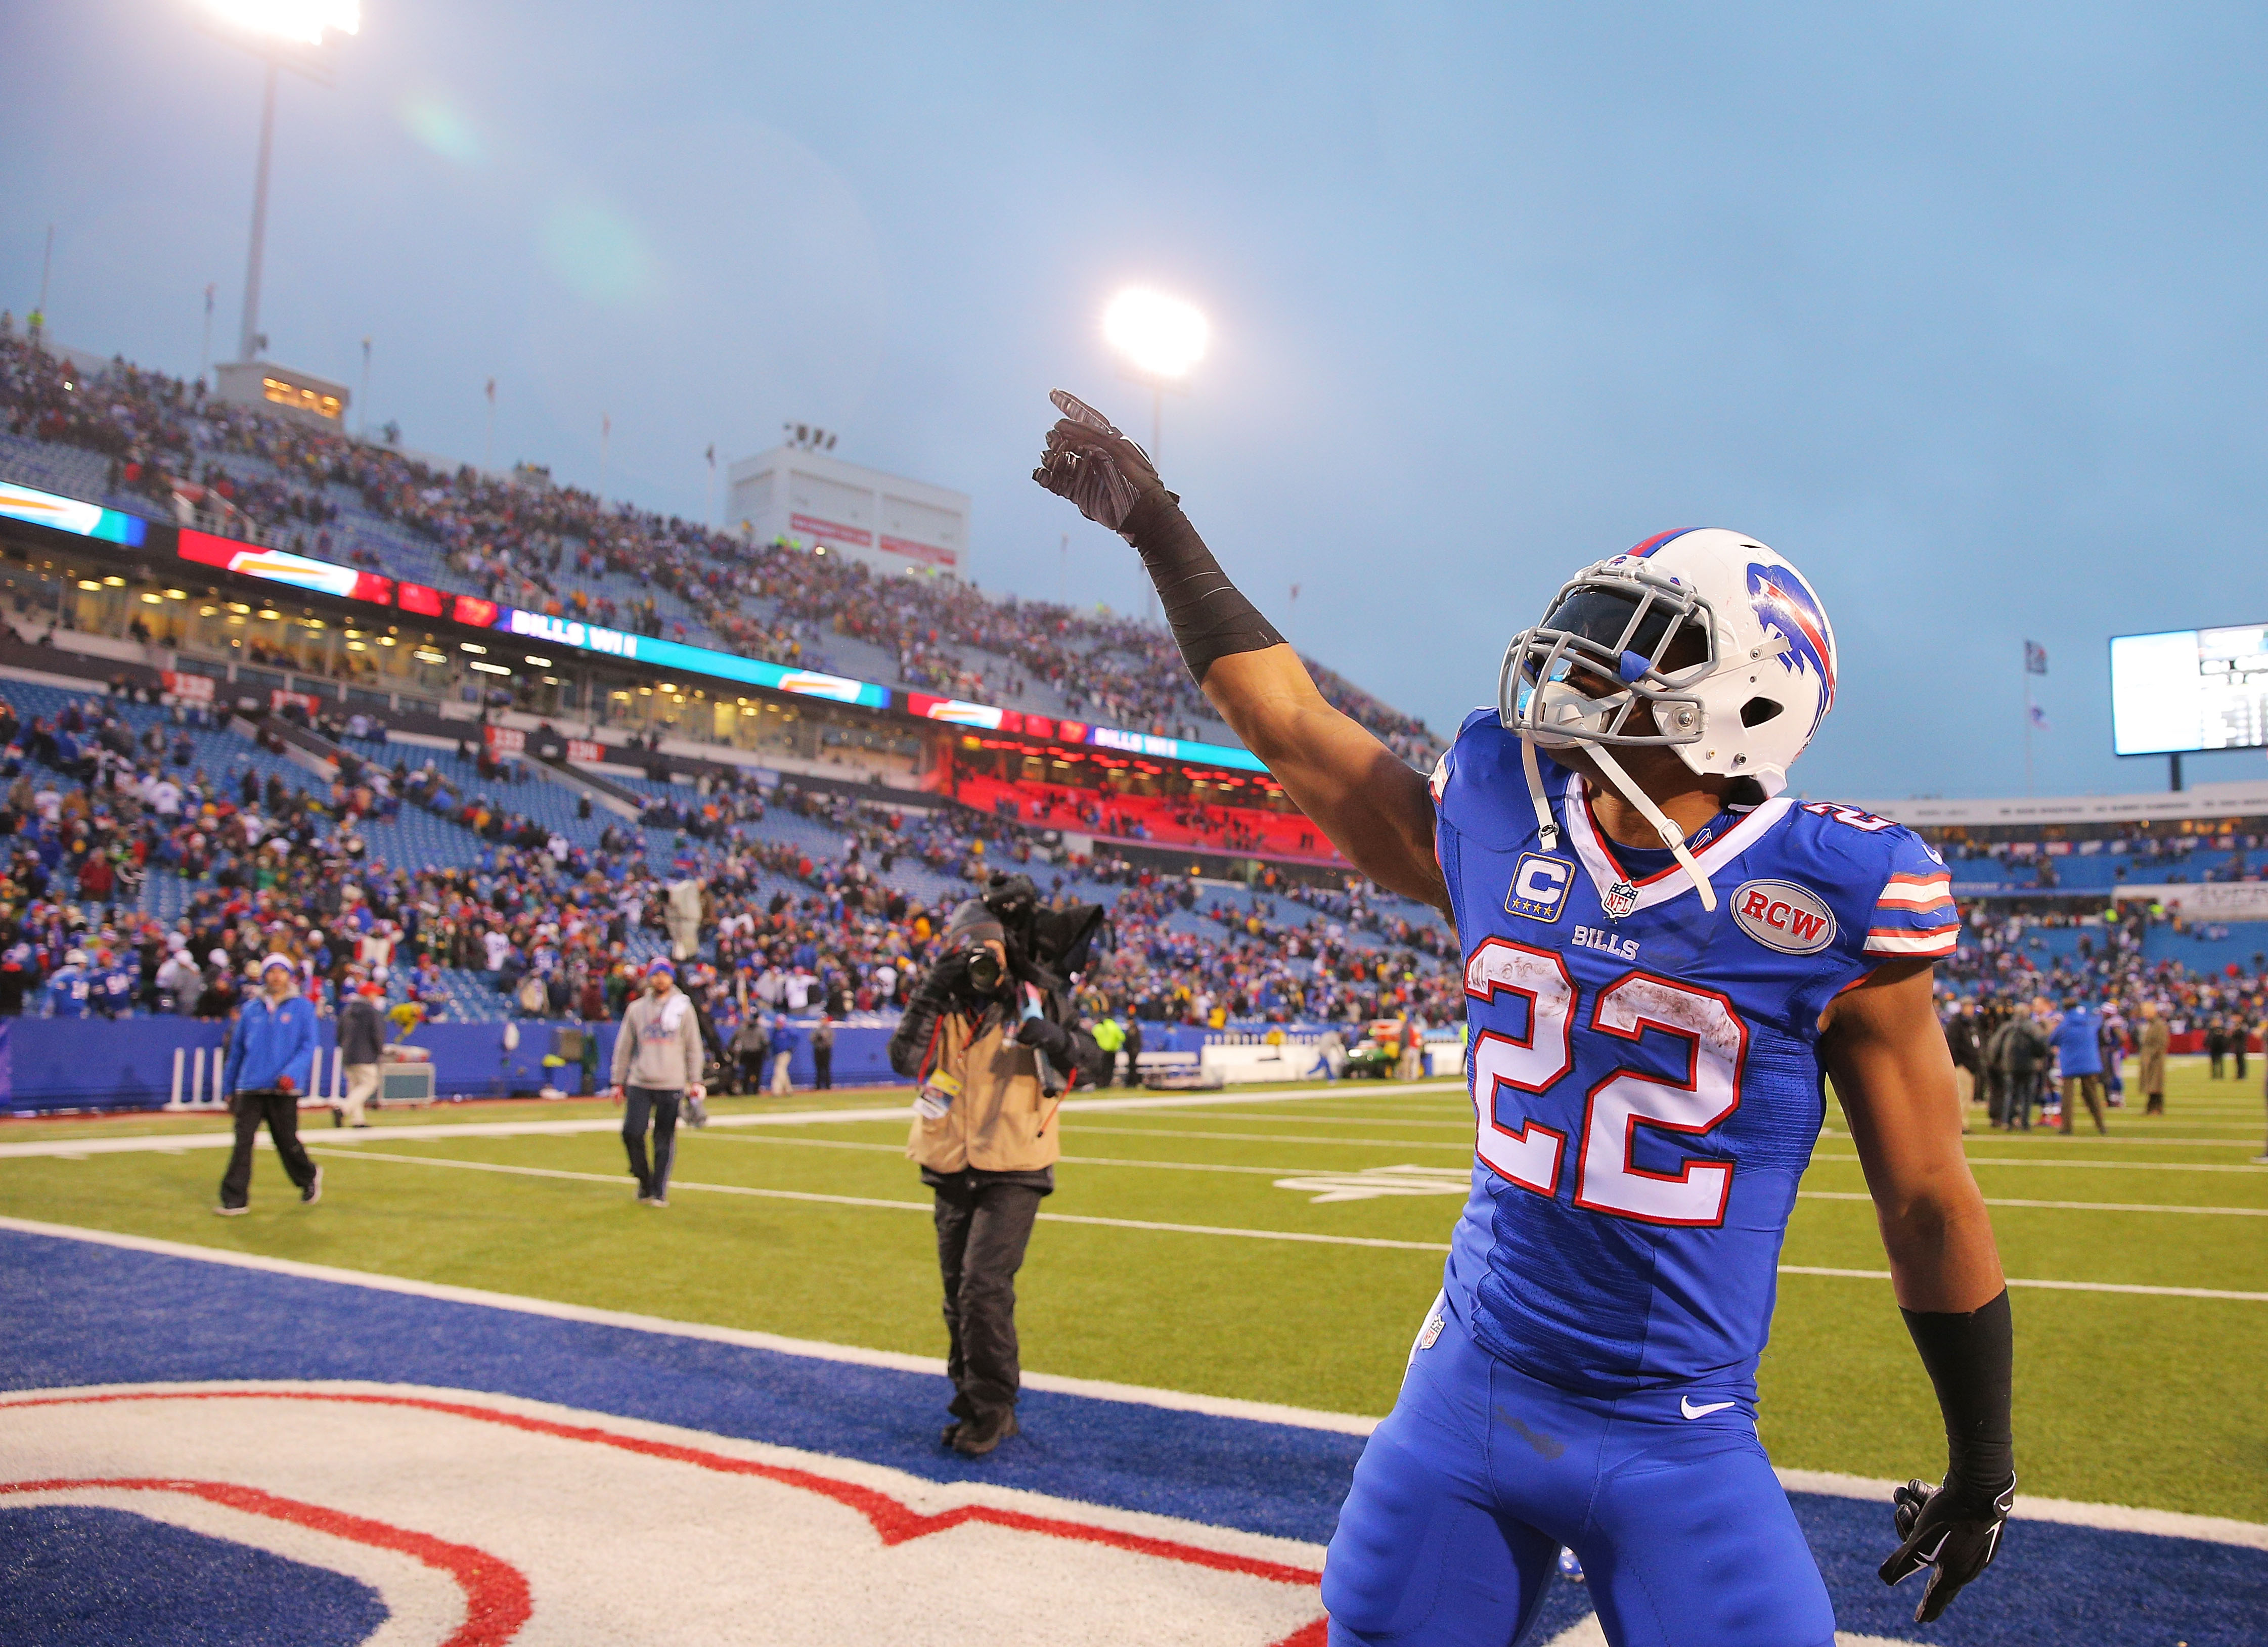 Fred Jackson #22 of the Buffalo Bills celebrates after beating the Green Bay Packers at Ralph Wilson Stadium on December 14, 2014 in Orchard Park, New York.